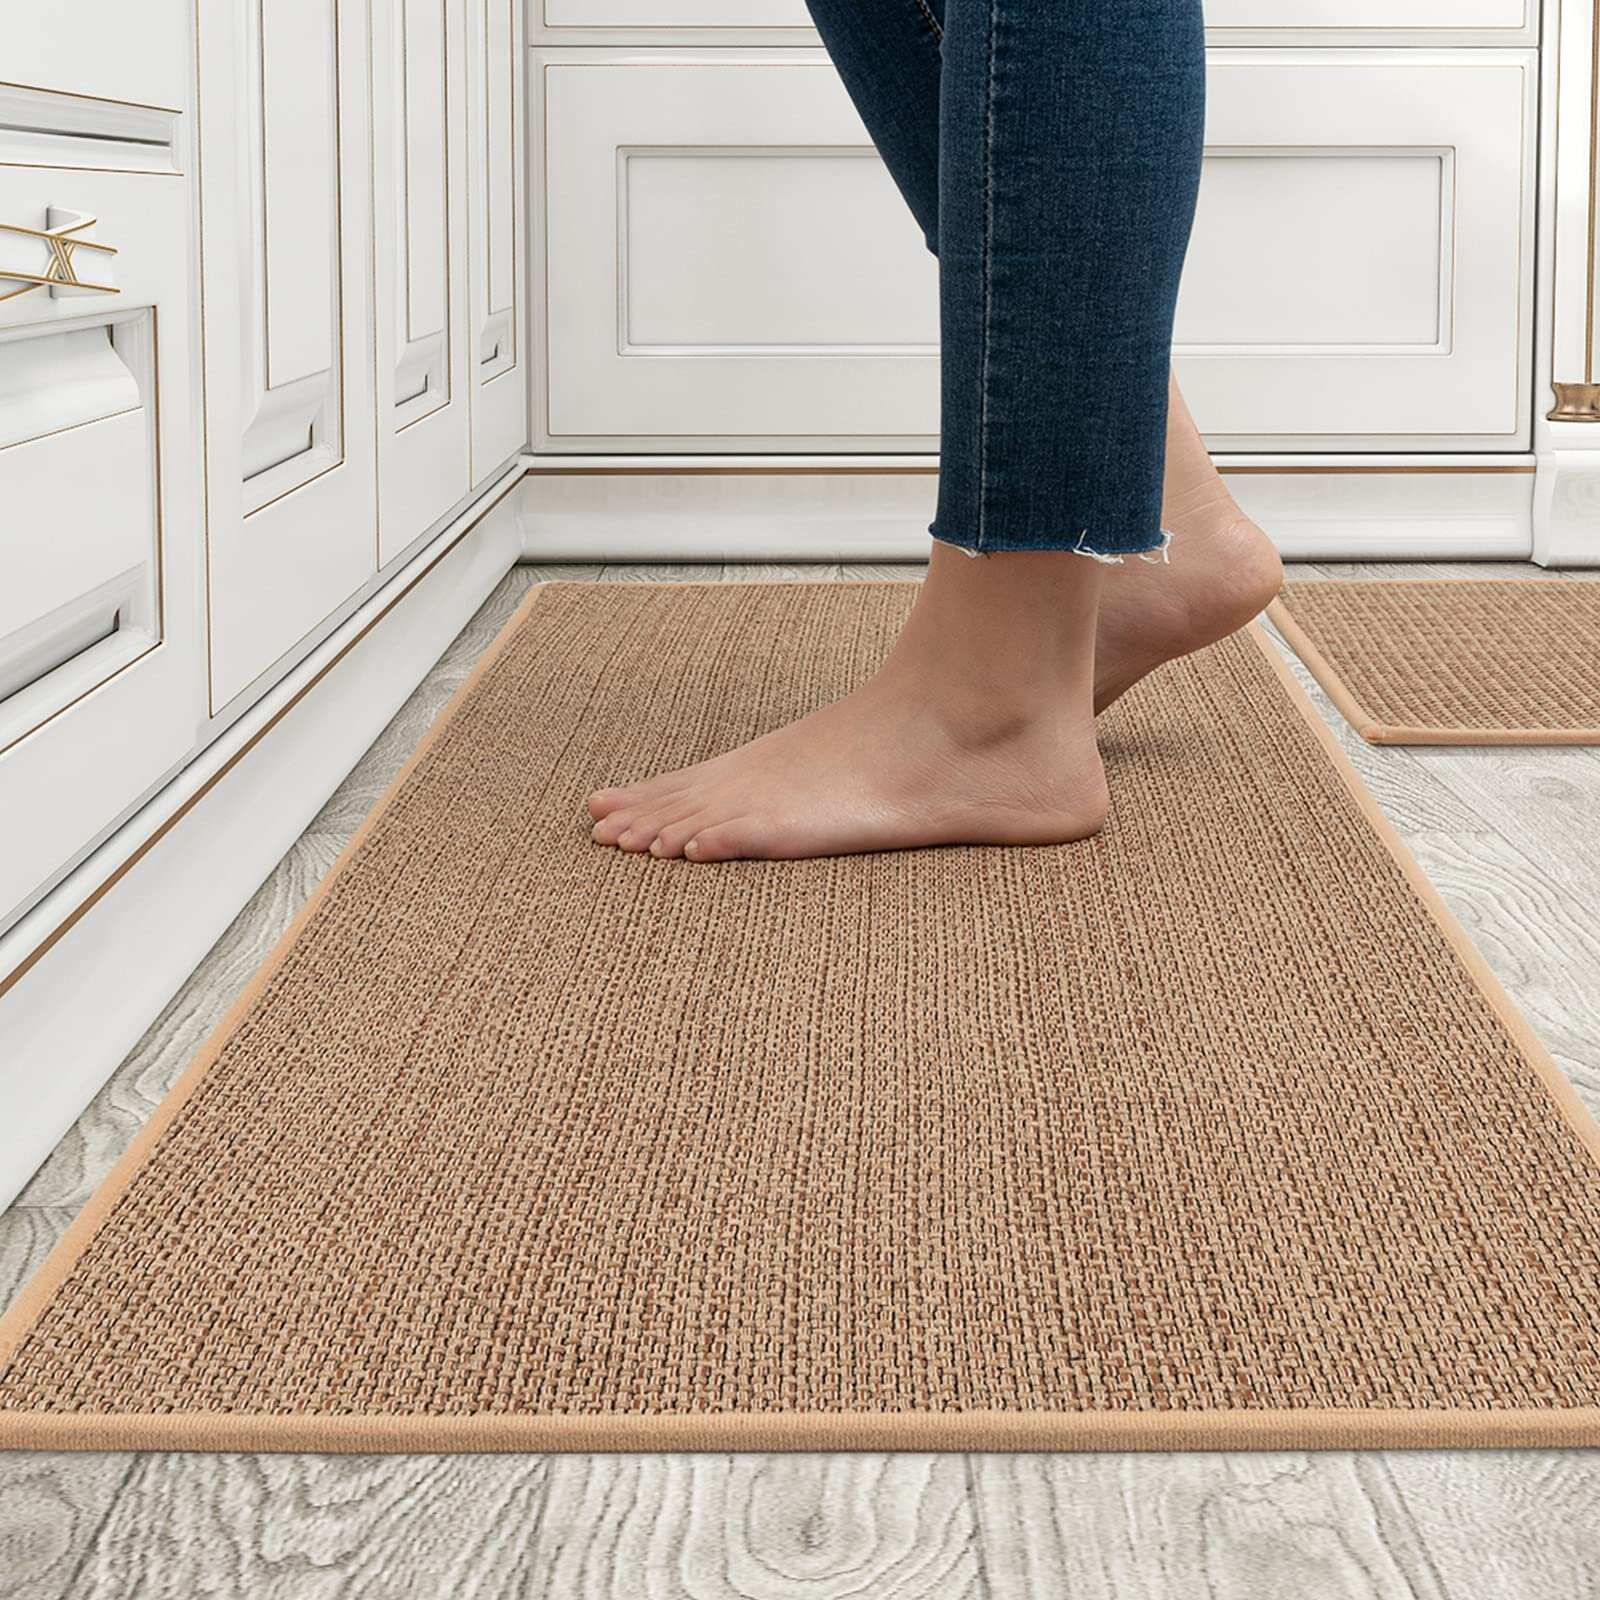 Latitude Run Kitchen Rugs And Mats Washable 2 Pcs Non Skid Natural Rubber Kitchen Mats For Floor Runner Rugs Set For Kitchen Floor Front Of Sink Hallway Laundry Room Wayfair